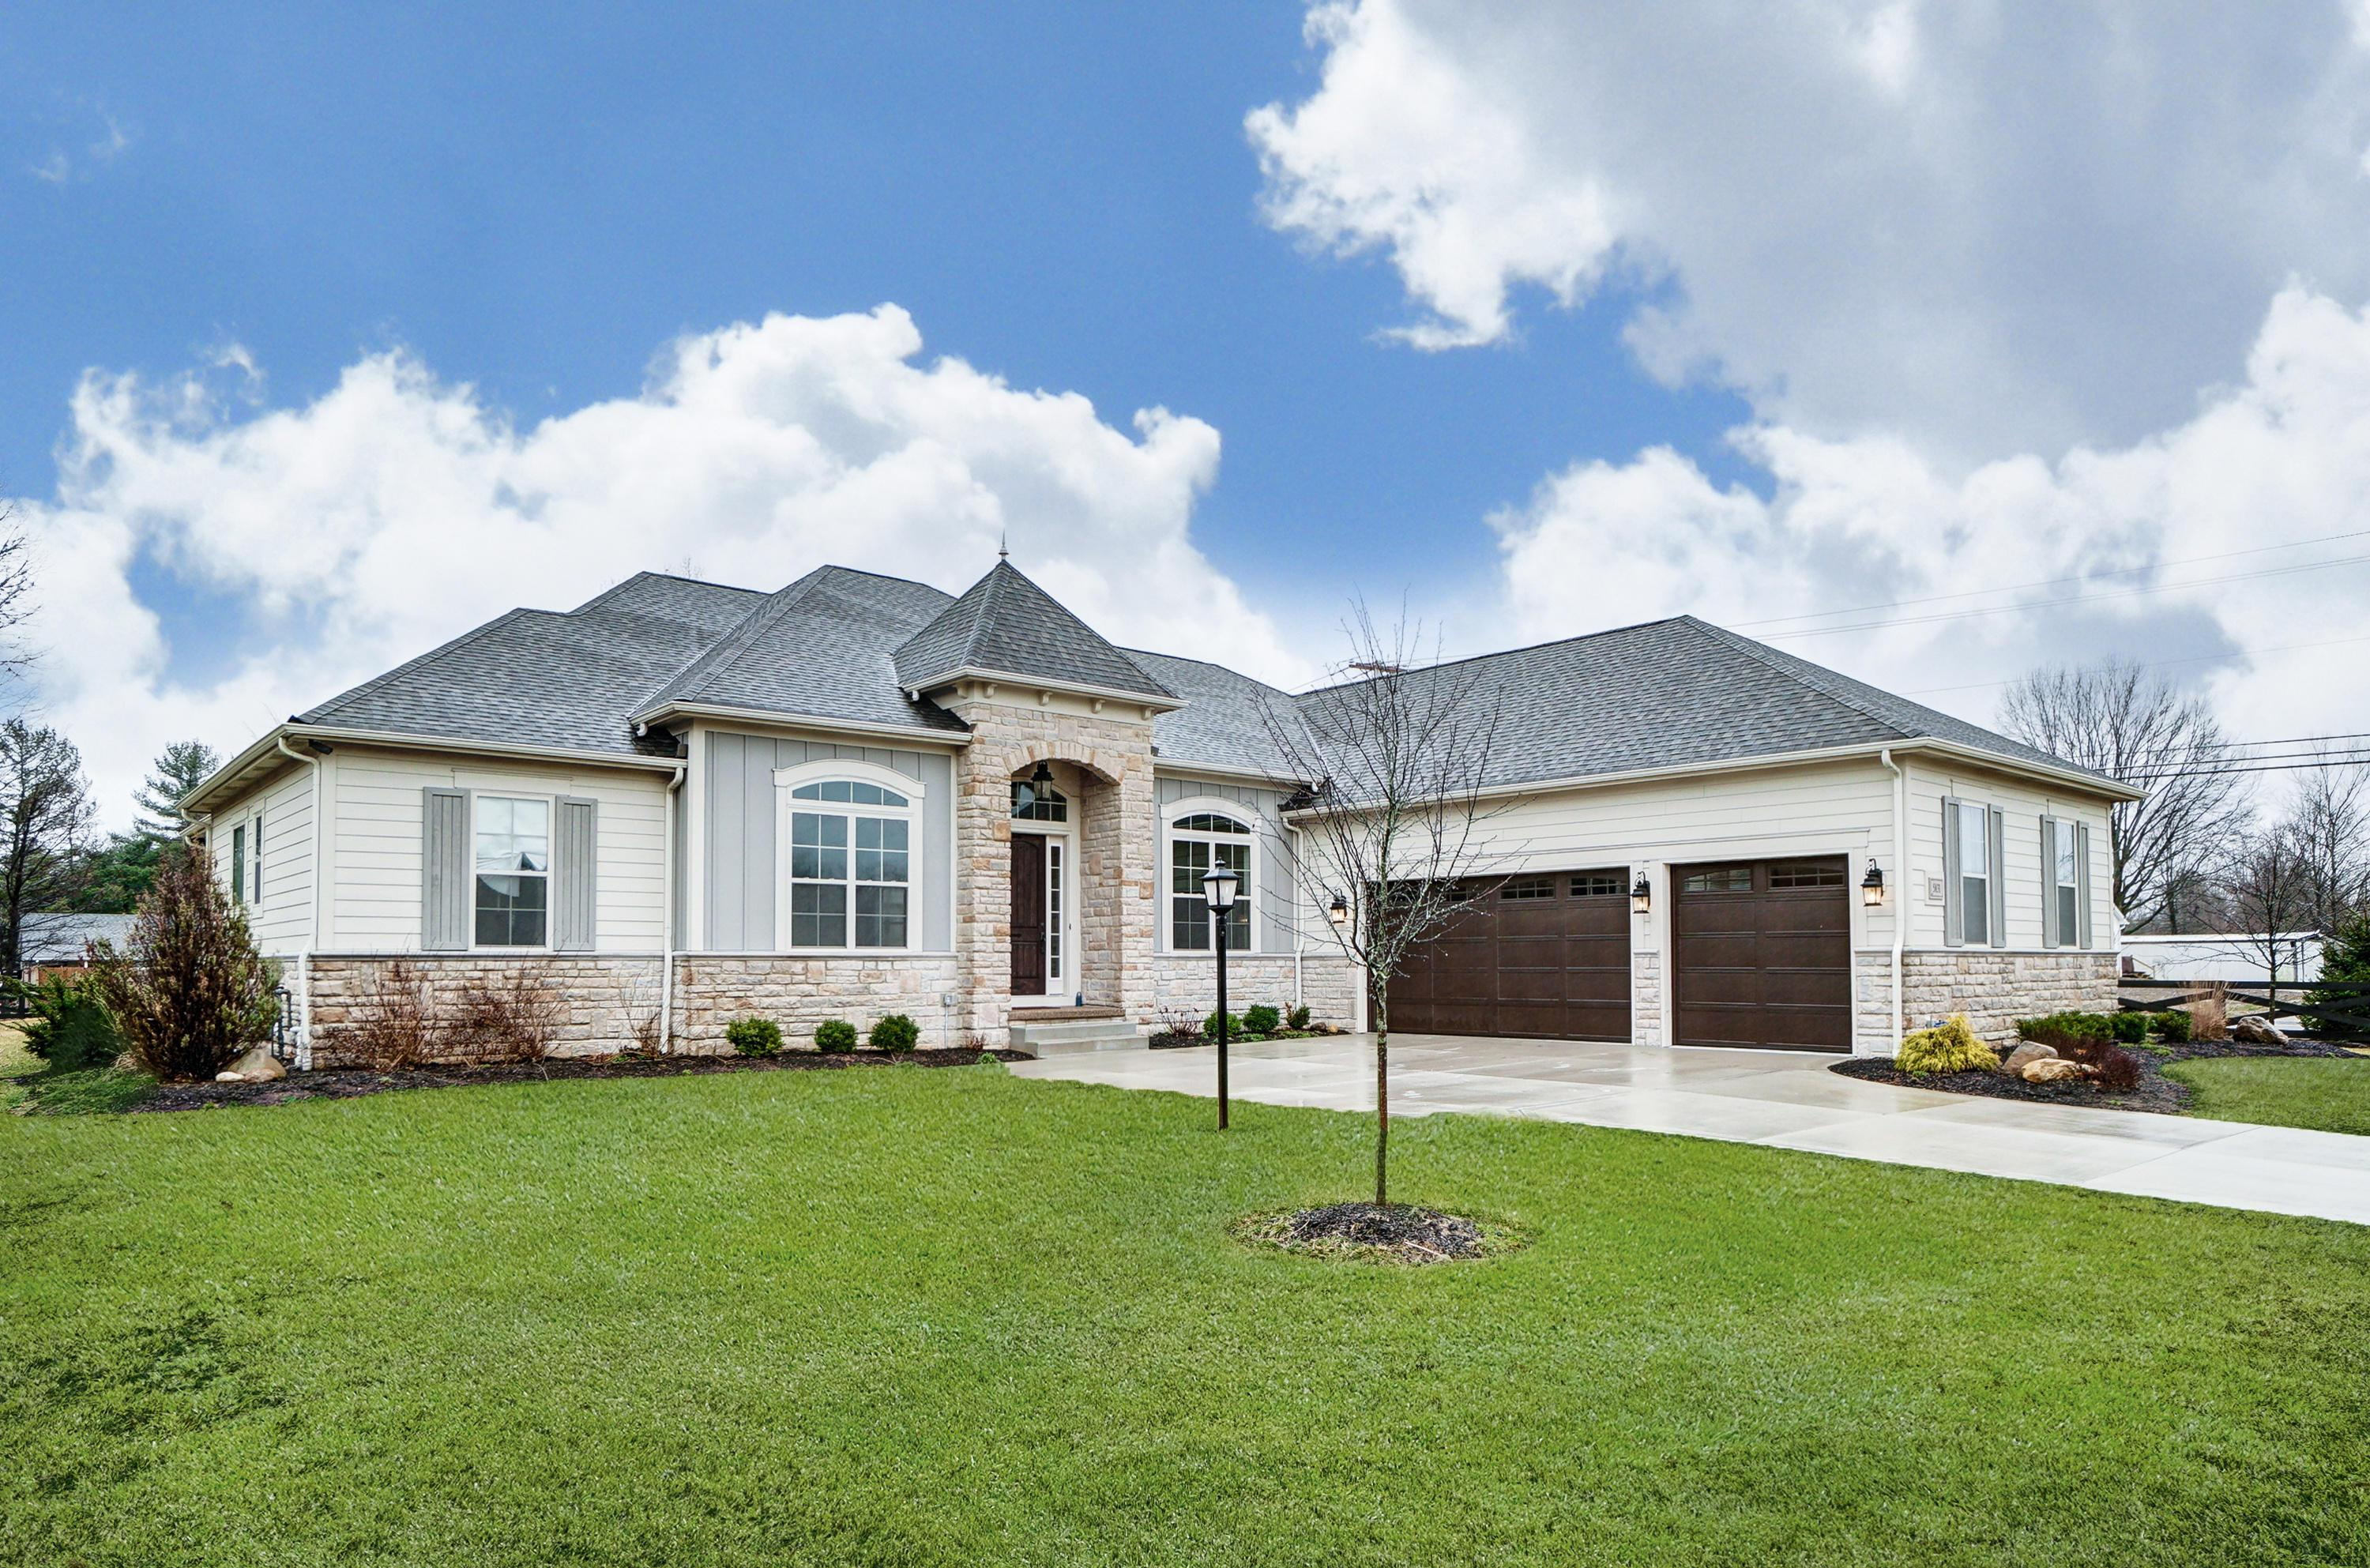 Photo of 5831 Elise Lane, Westerville, OH 43082